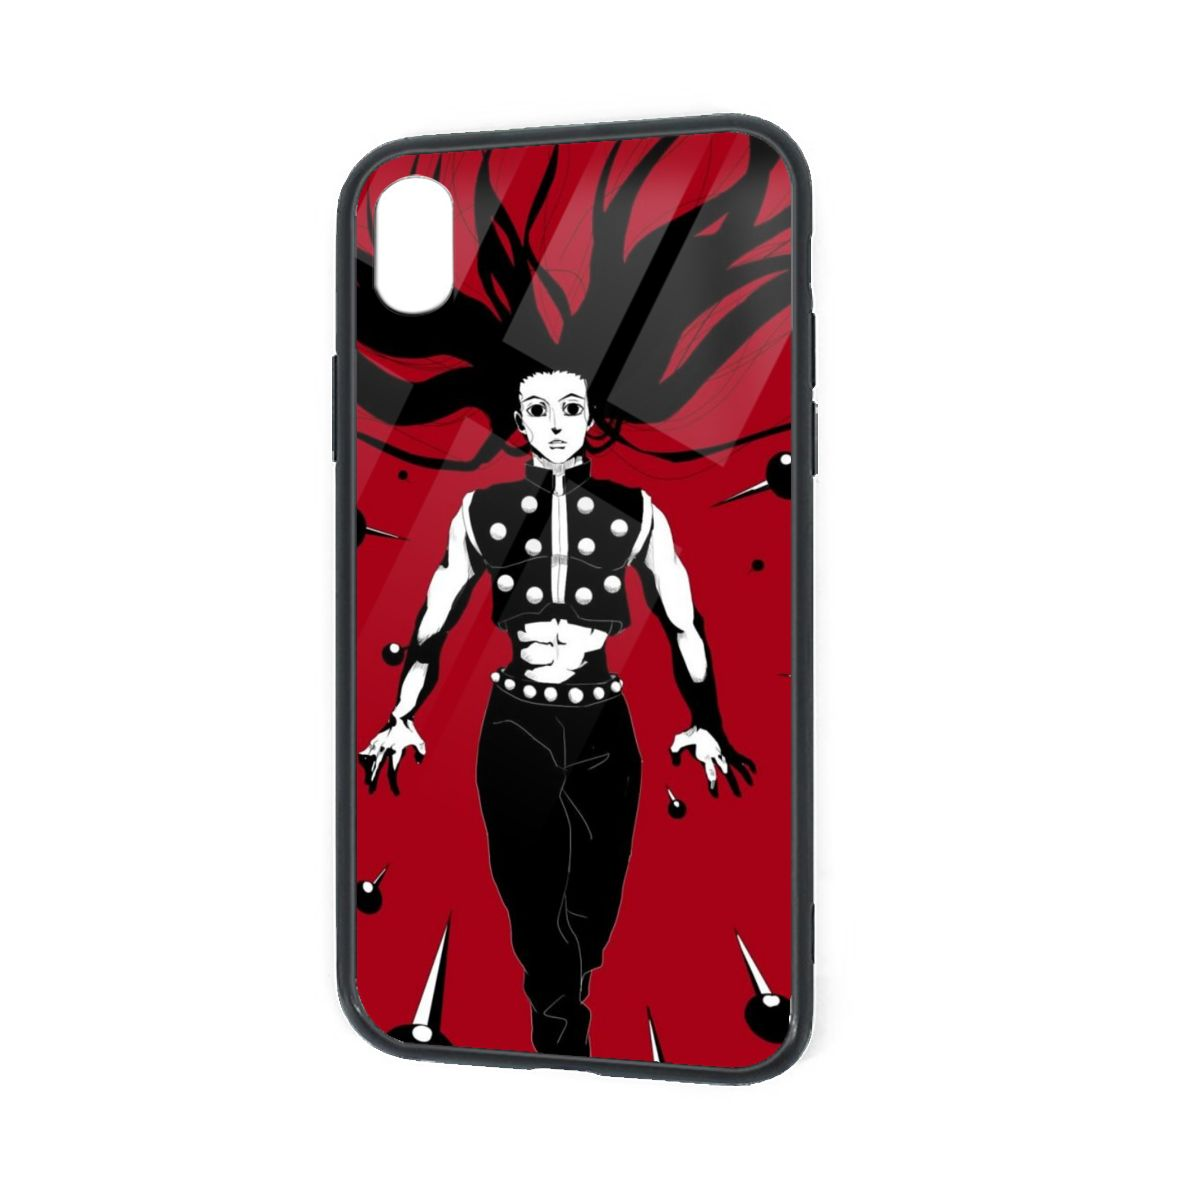 IPhone X XR XS 6 7 8 Plus Anime Soft Silicone Phone Case Illumi Zoldyck